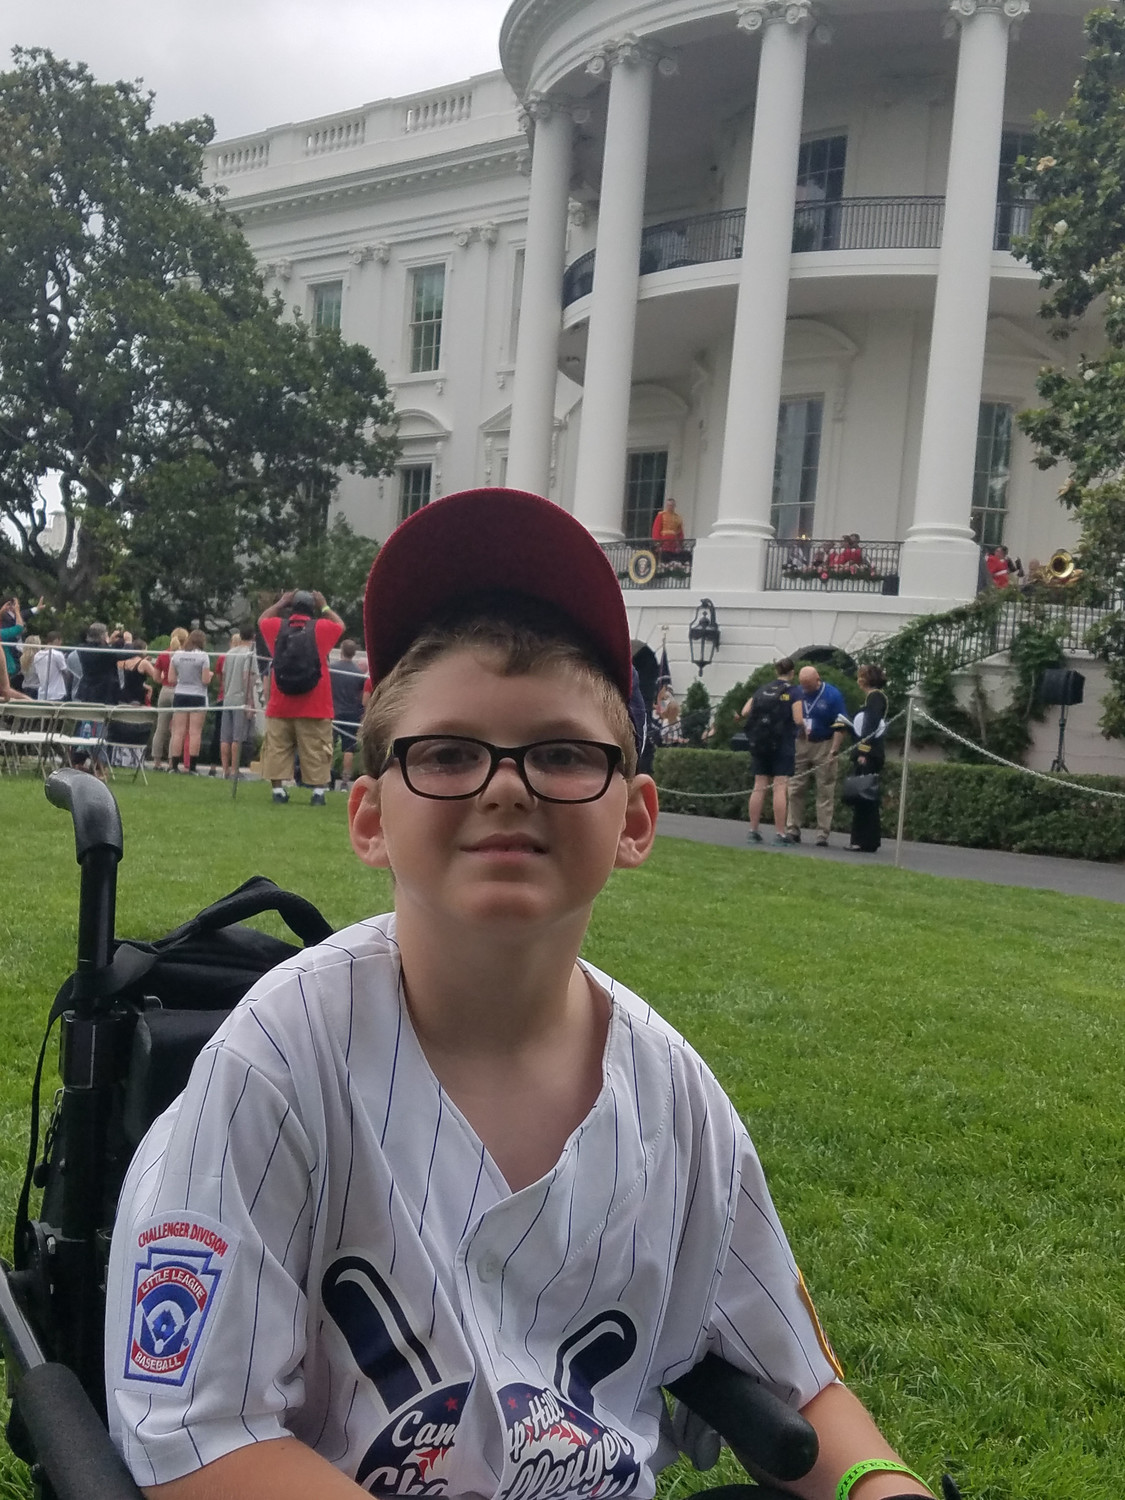 Ethan Whitaker in front of the White House. Ethan was one of the members of the Challenger Baseball League that went to a White House field day on May 30.